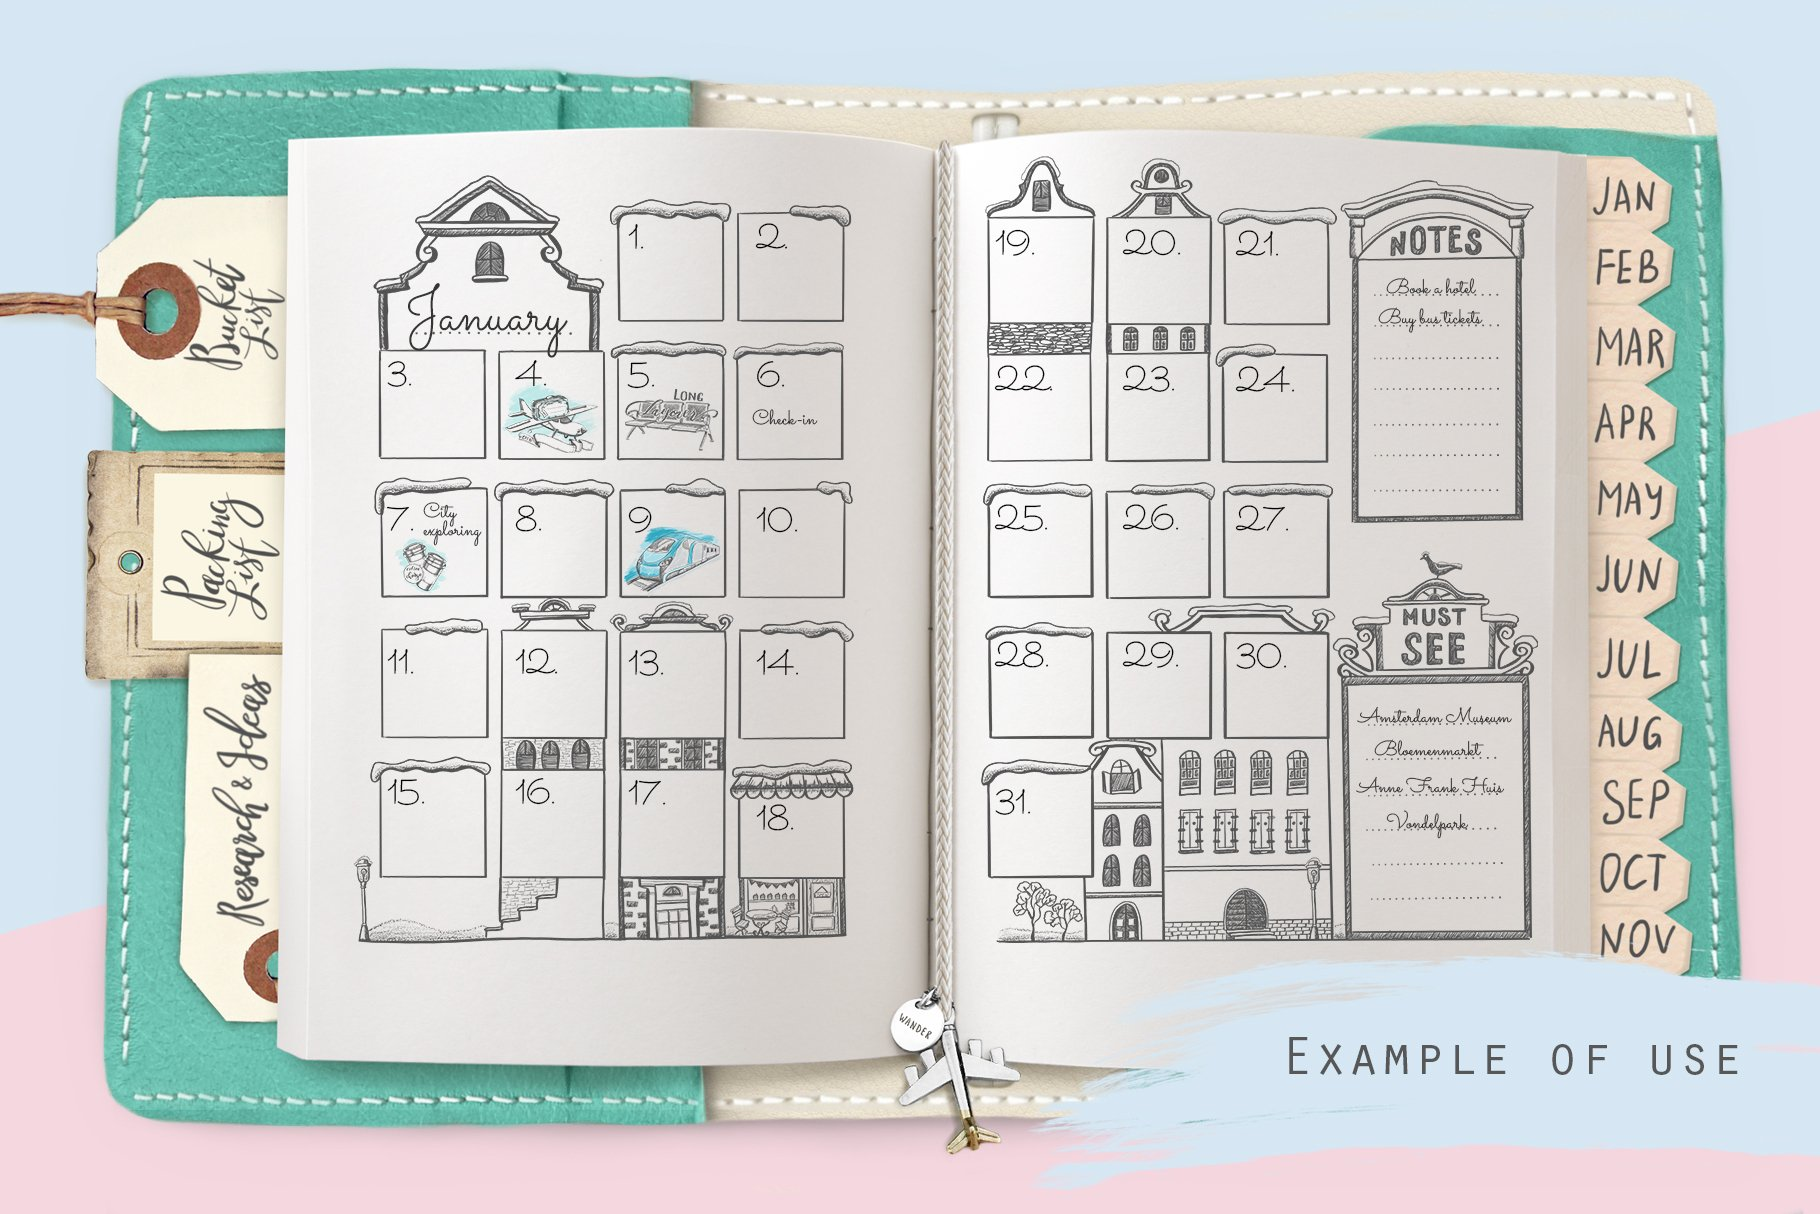 Undated monthly calendar template - Stationery - 2